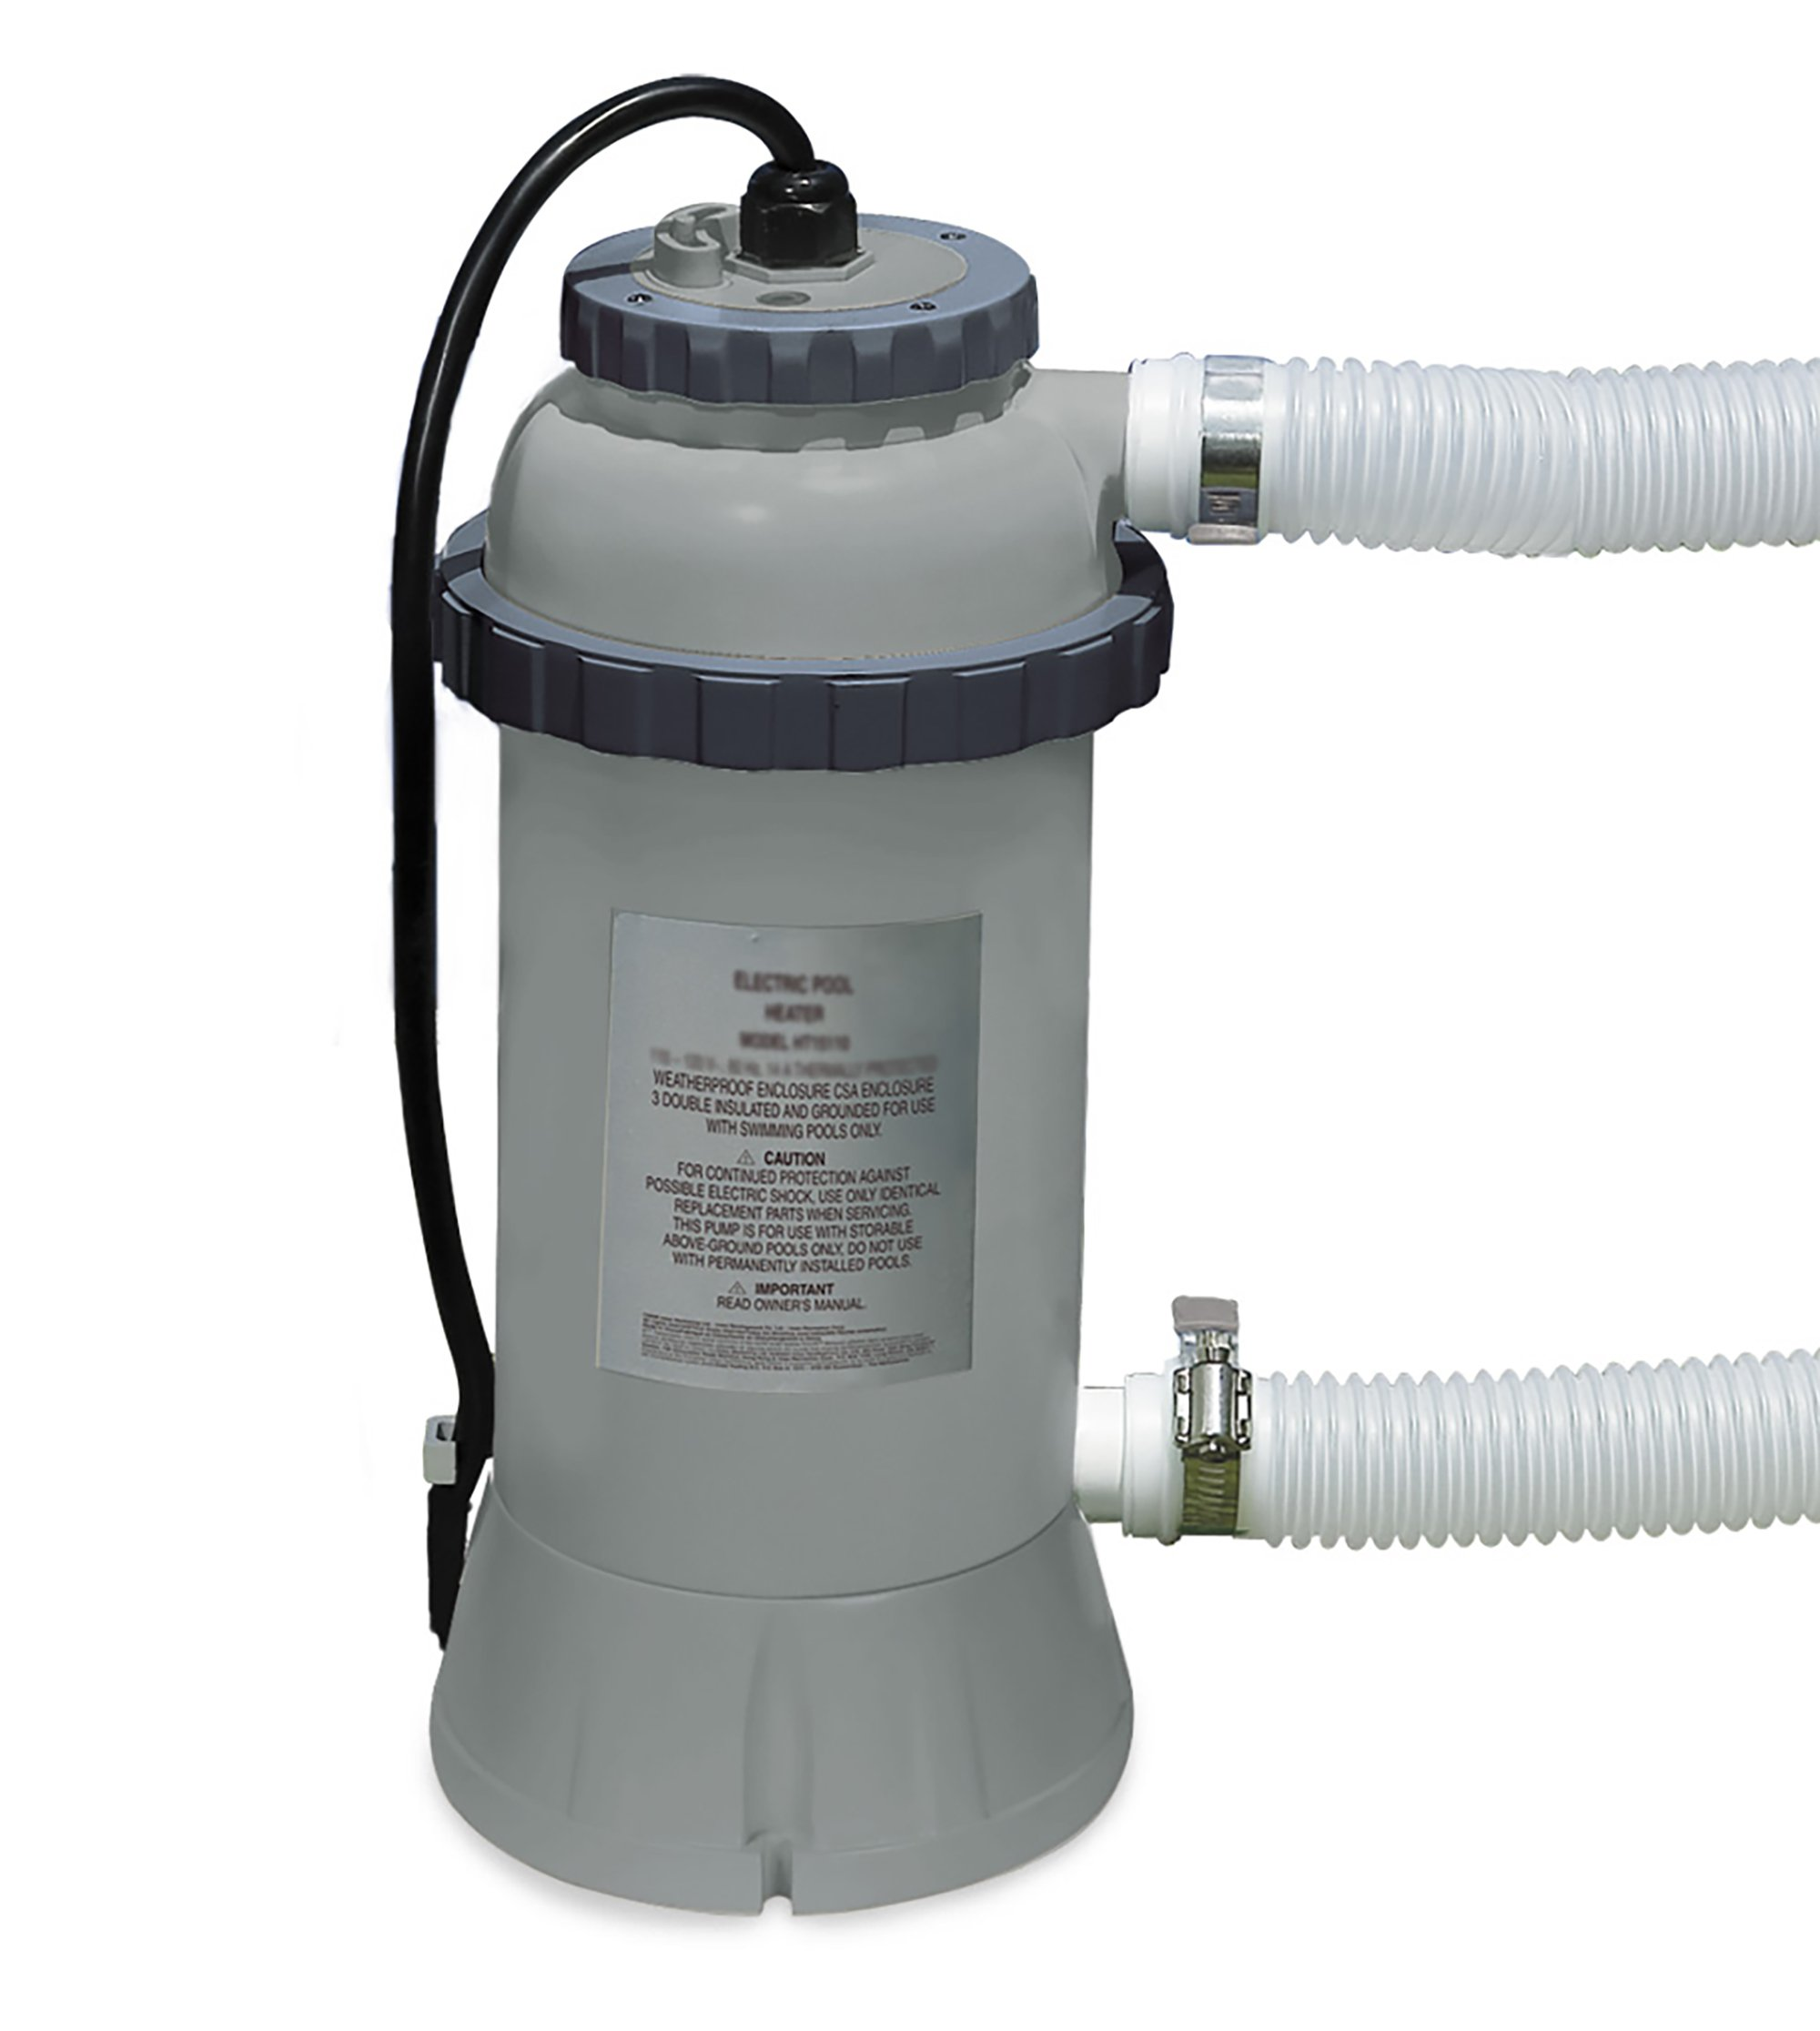 Intex 28684 Swimming Pool Heater 3kw Suitable For Pools Up